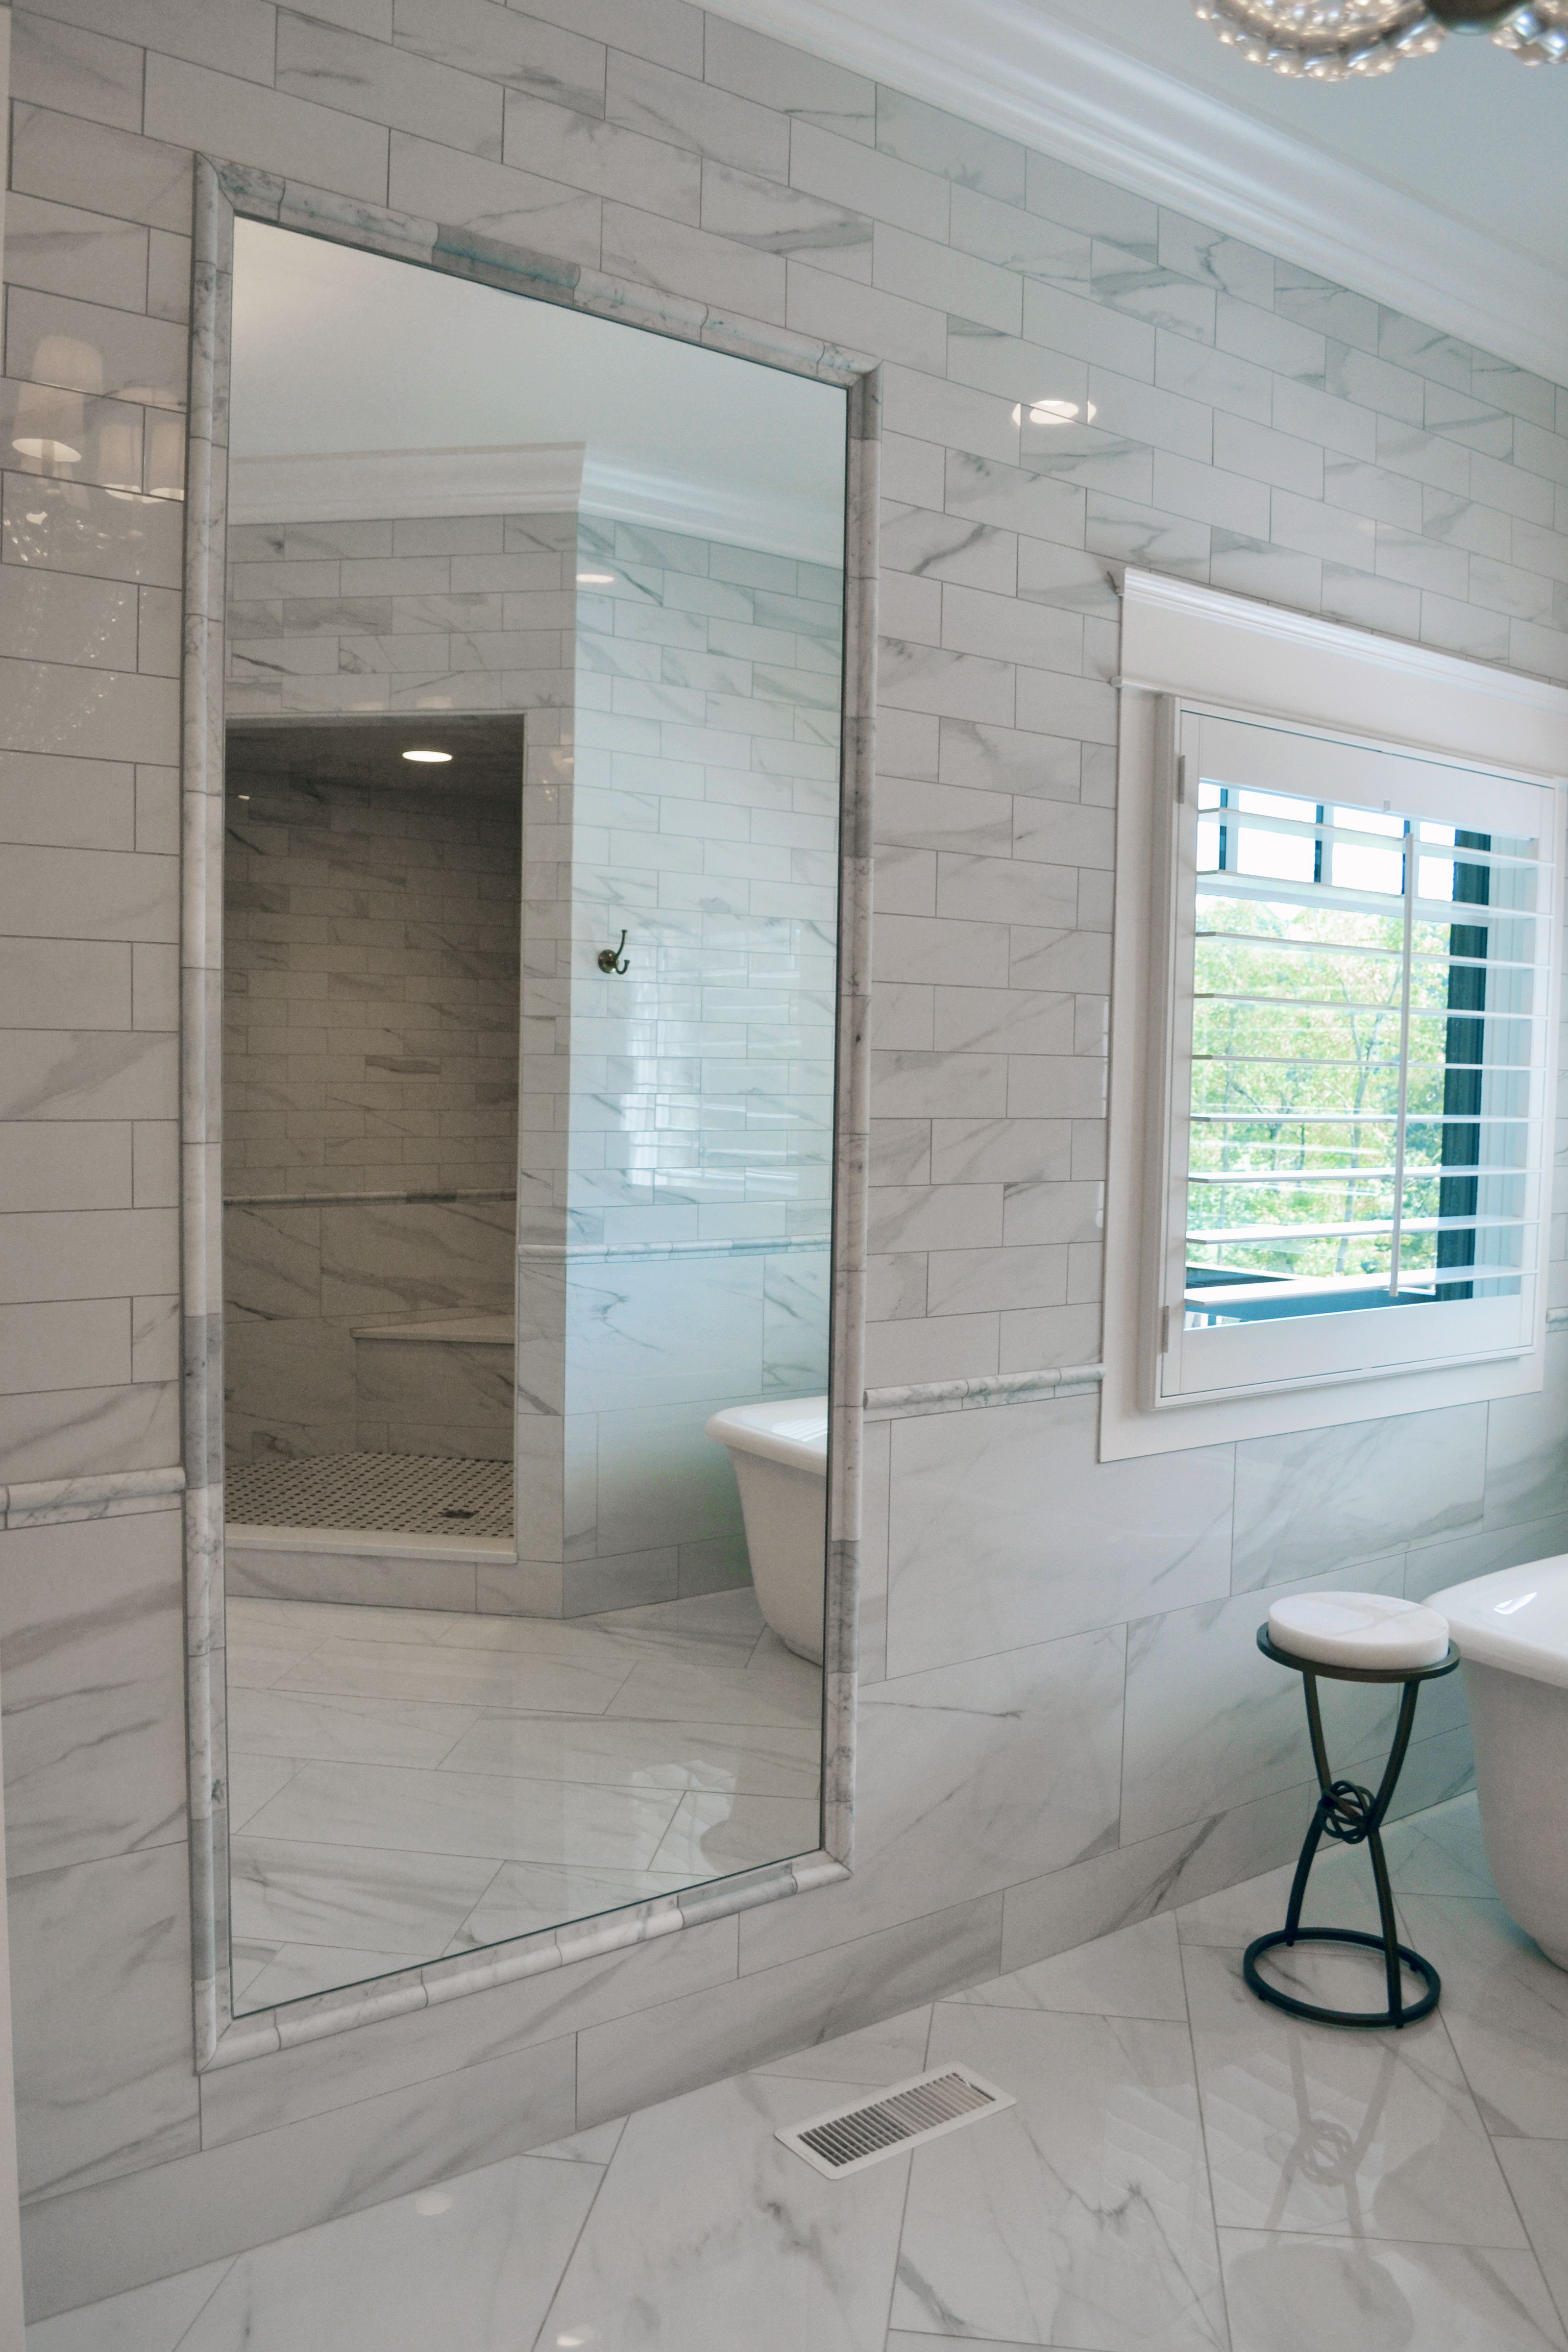 Bathroom Tile Parade Of Homes Bowling Green Kentucky Tile Trends